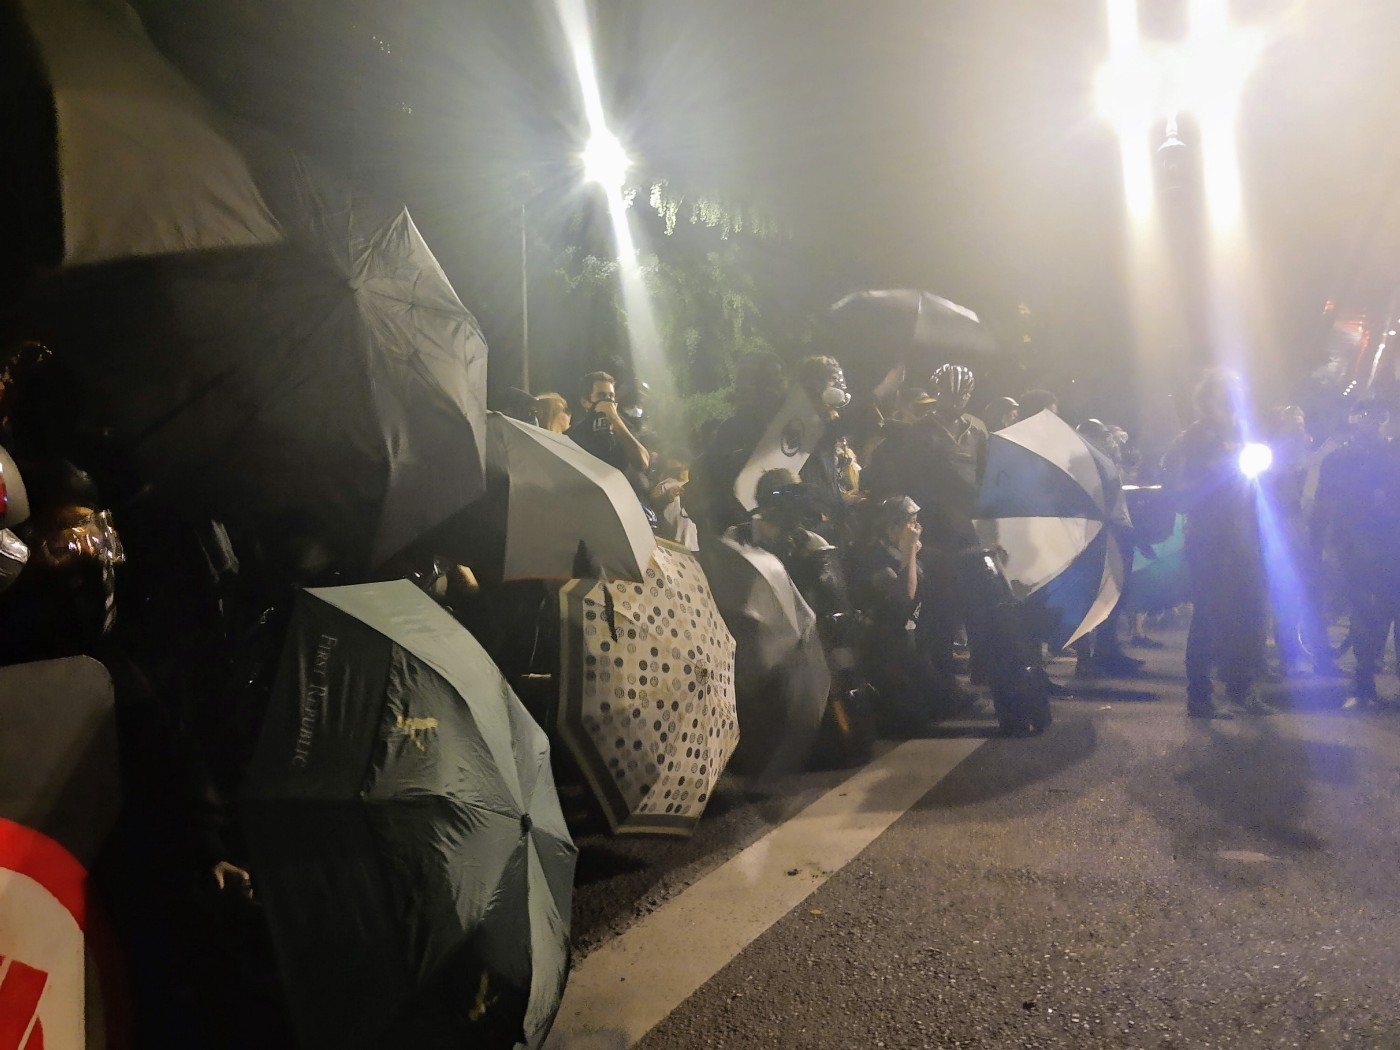 Protesters stand in a line on the street and hold up umbrellas as shields. It obscures their faces